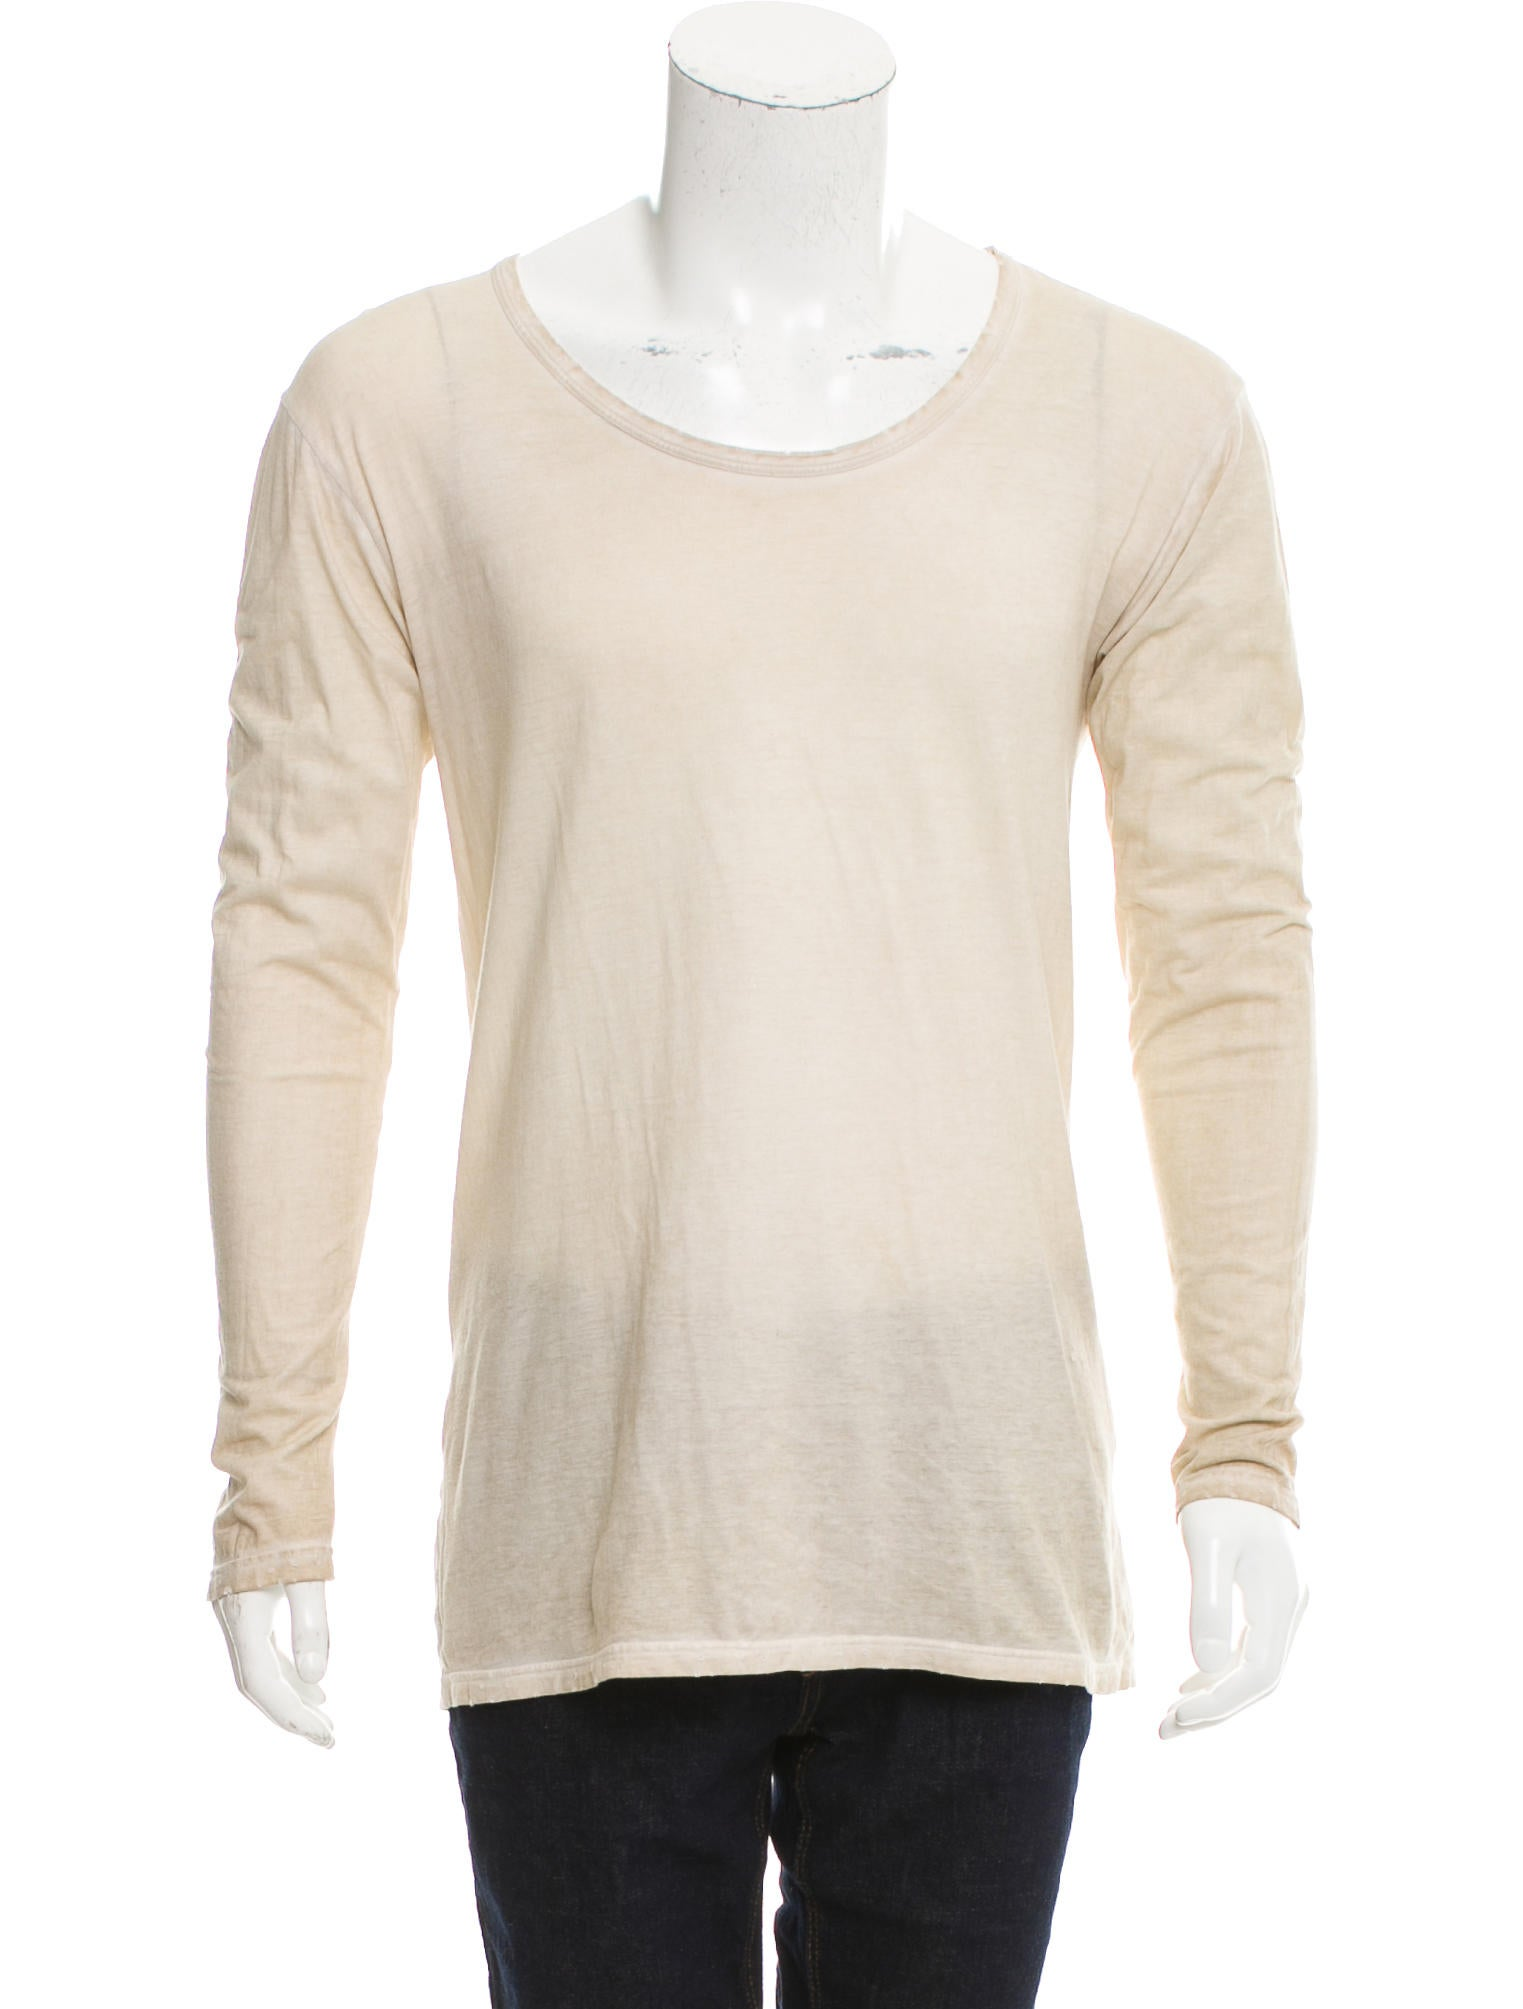 Balmain distressed knit shirt clothing bam25010 the for How to make a distressed shirt